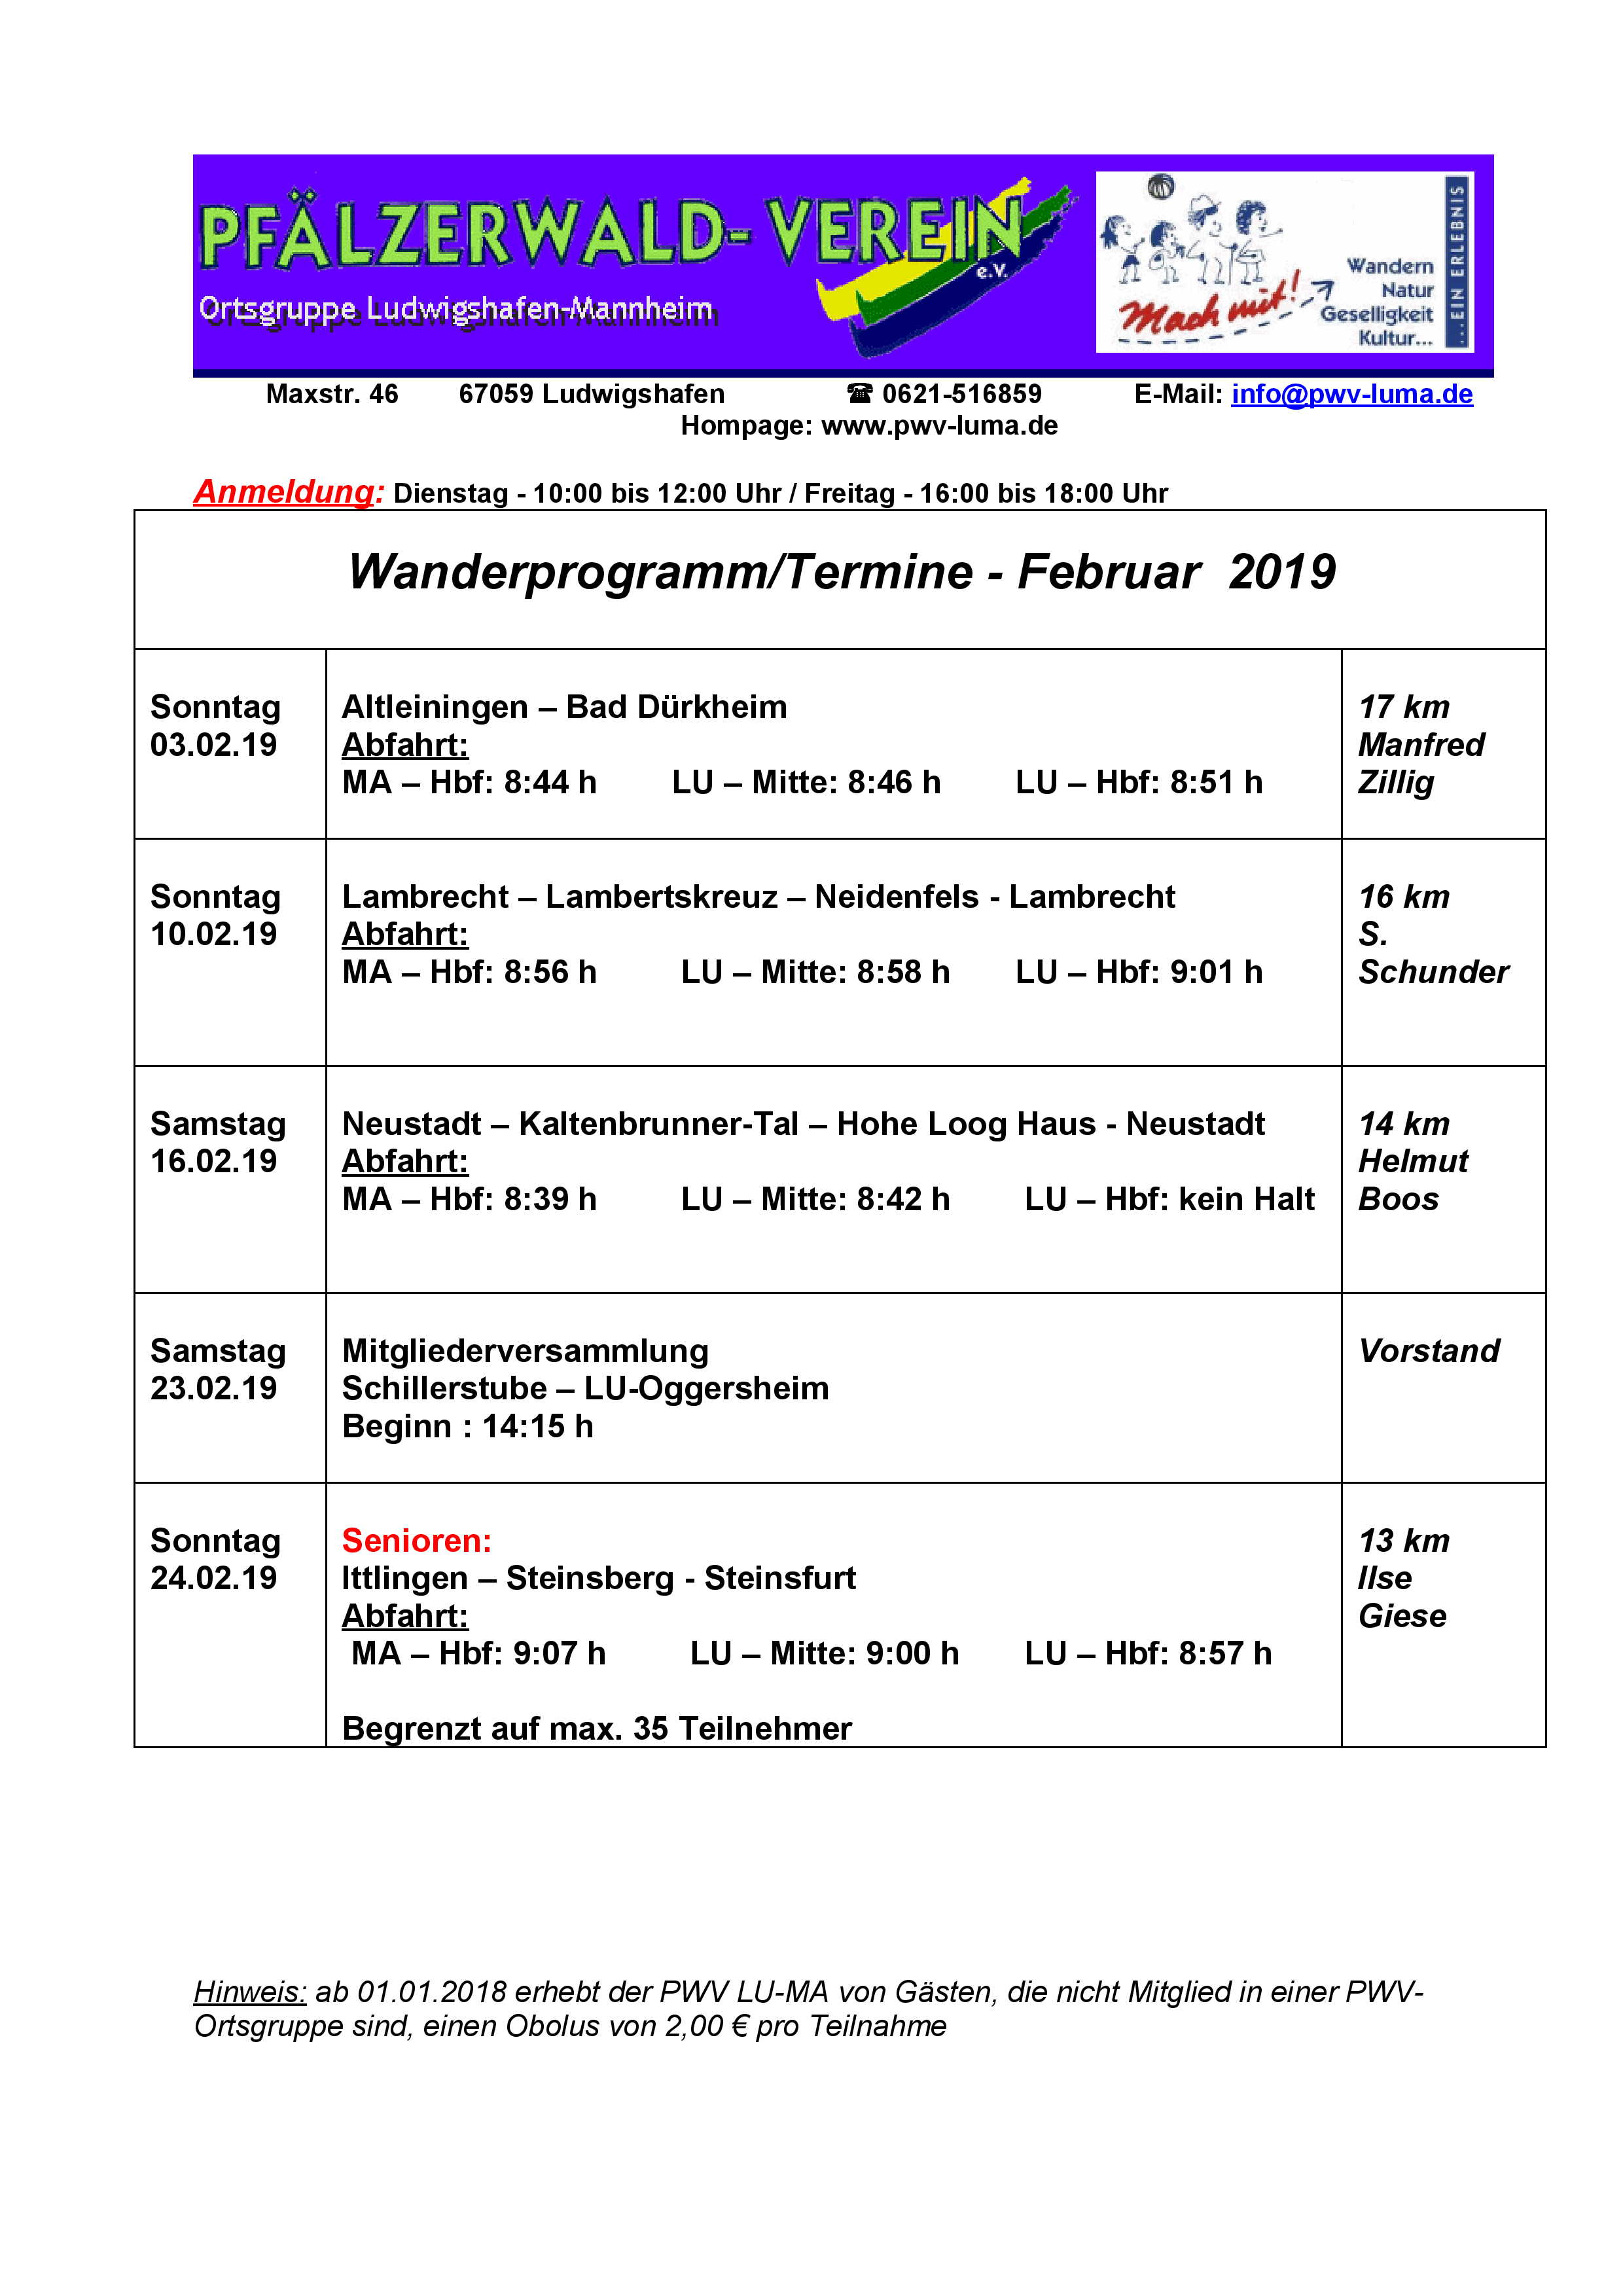 Wanderinformation Februar_2019